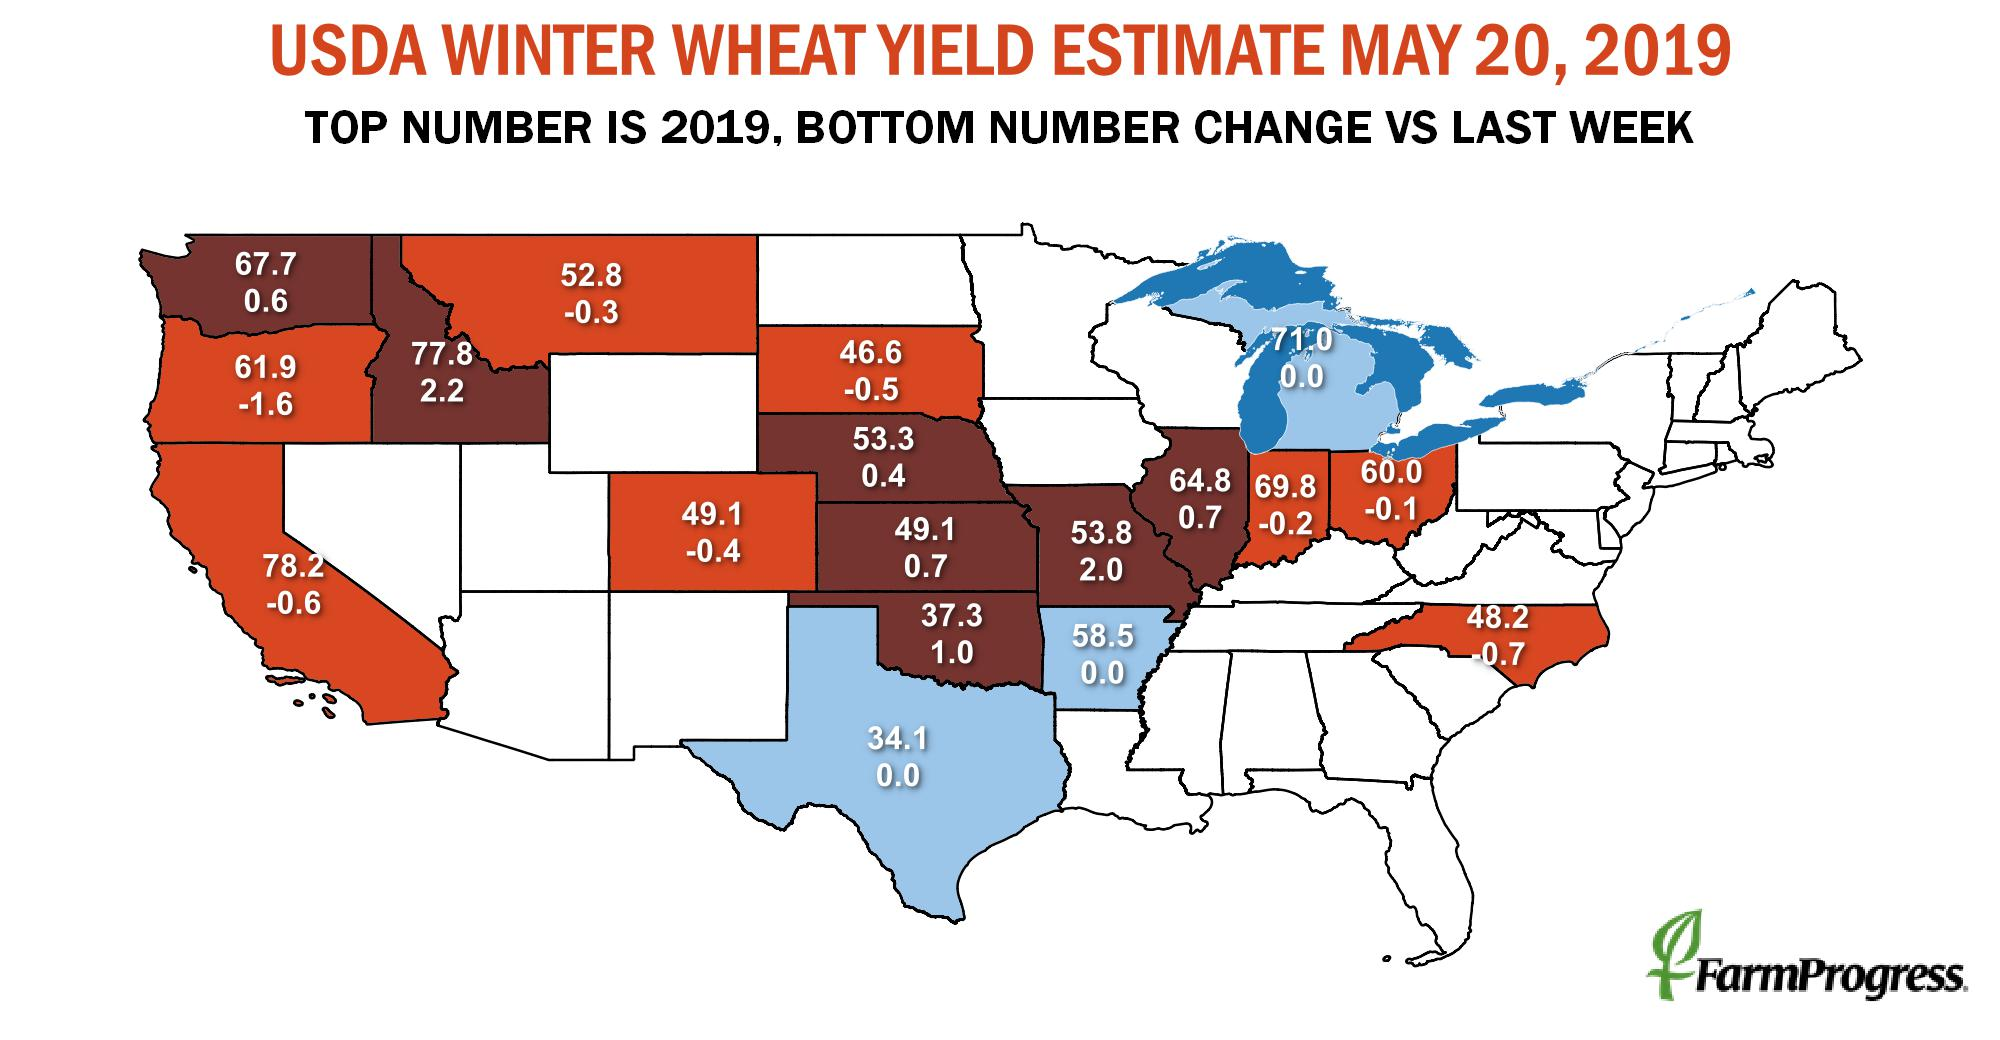 WinterWheat052019.jpeg